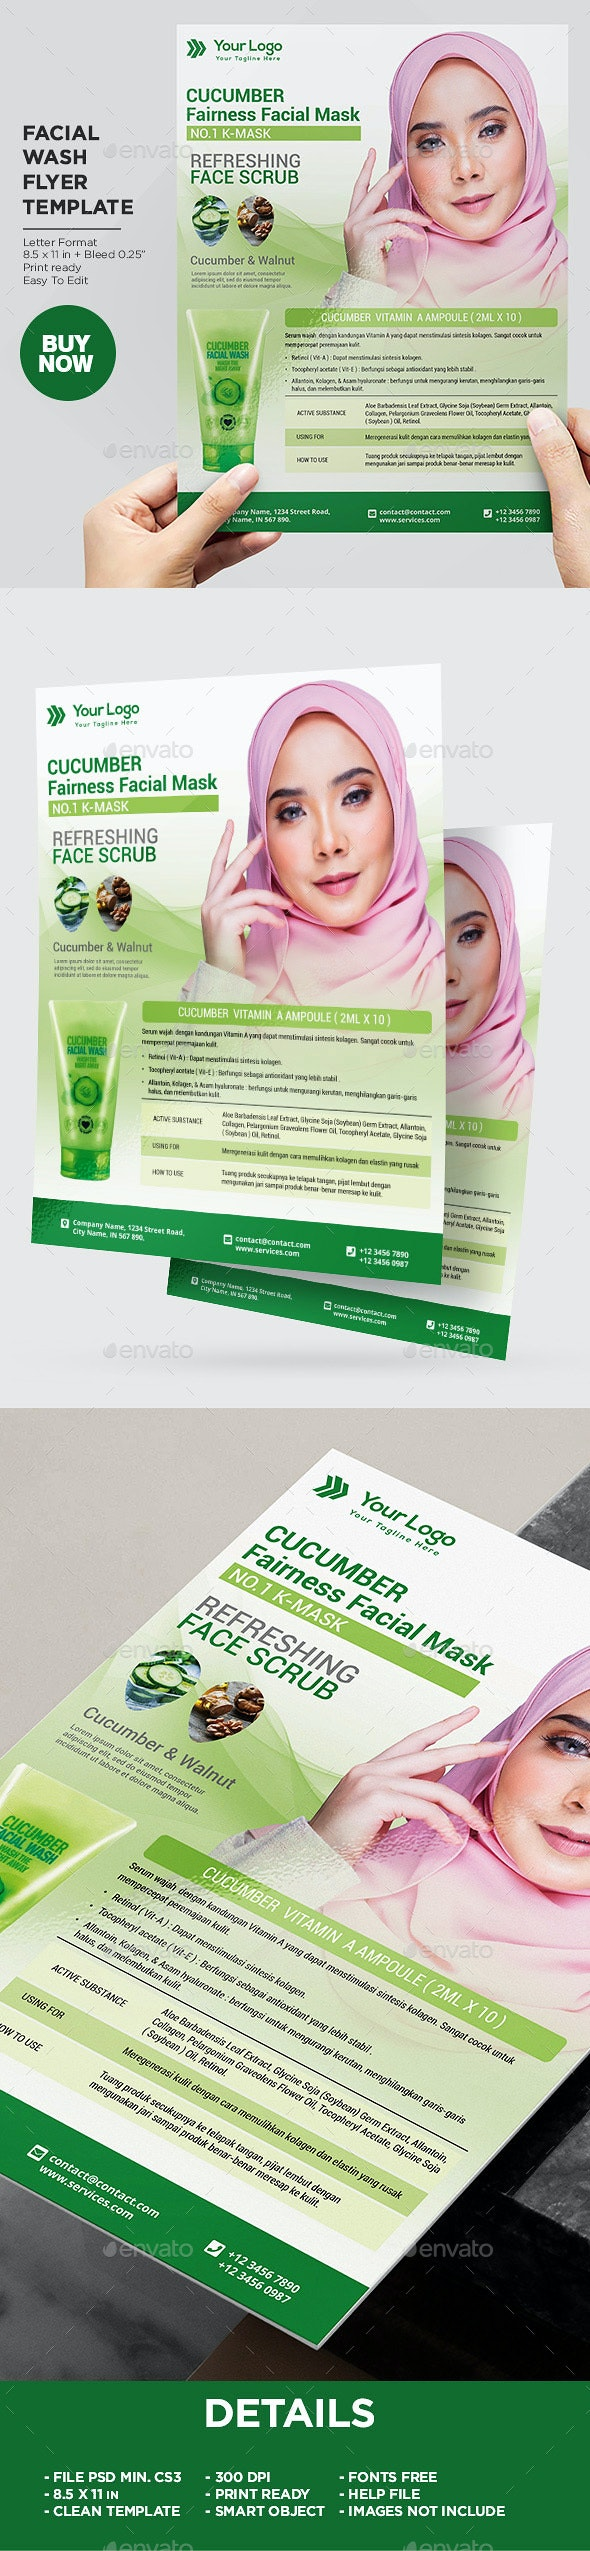 Product Flyer Facial Wash - Corporate Flyers